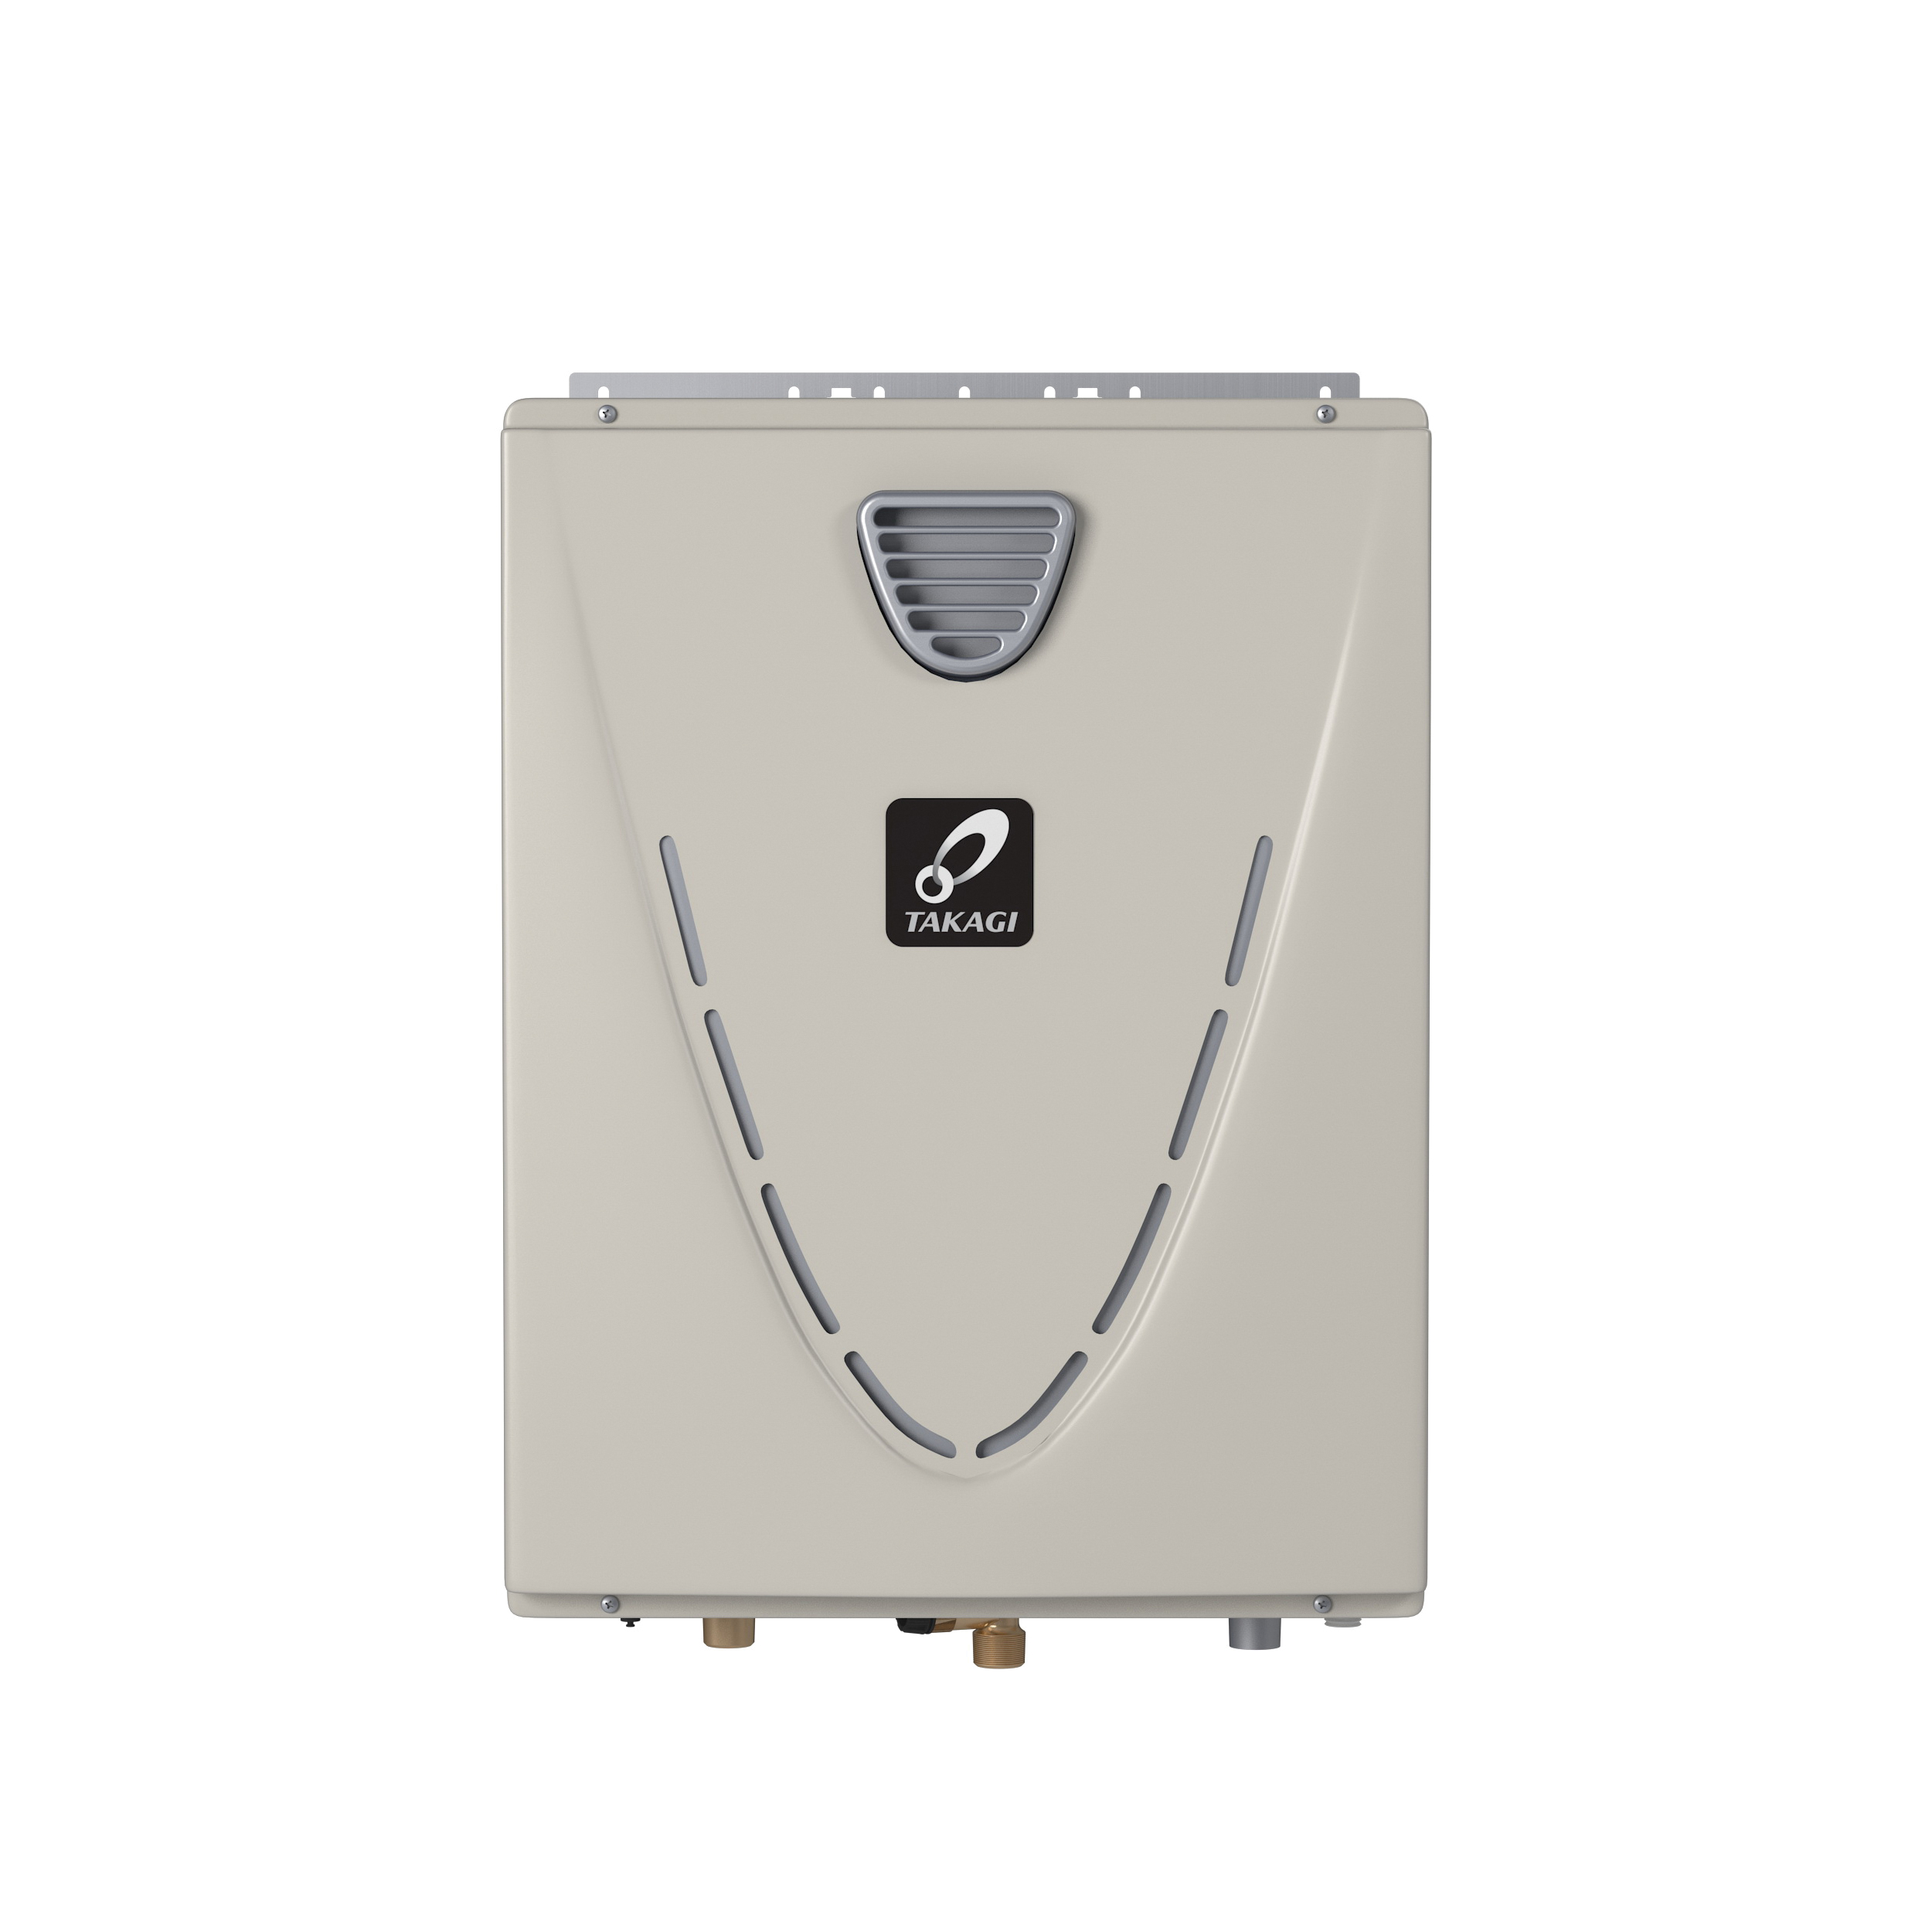 Takagi TH3SOSLP H3S Tankless Water Heater, Liquid Propane Fuel, 180000 Btu/hr Heating, Indoor/Outdoor: Outdoor, Condensing/Non Condensing: Condensing, 8 gpm, 4 in, 0.9, Commercial/Residential/Dual: Dual, Ultra Low NOx: Yes